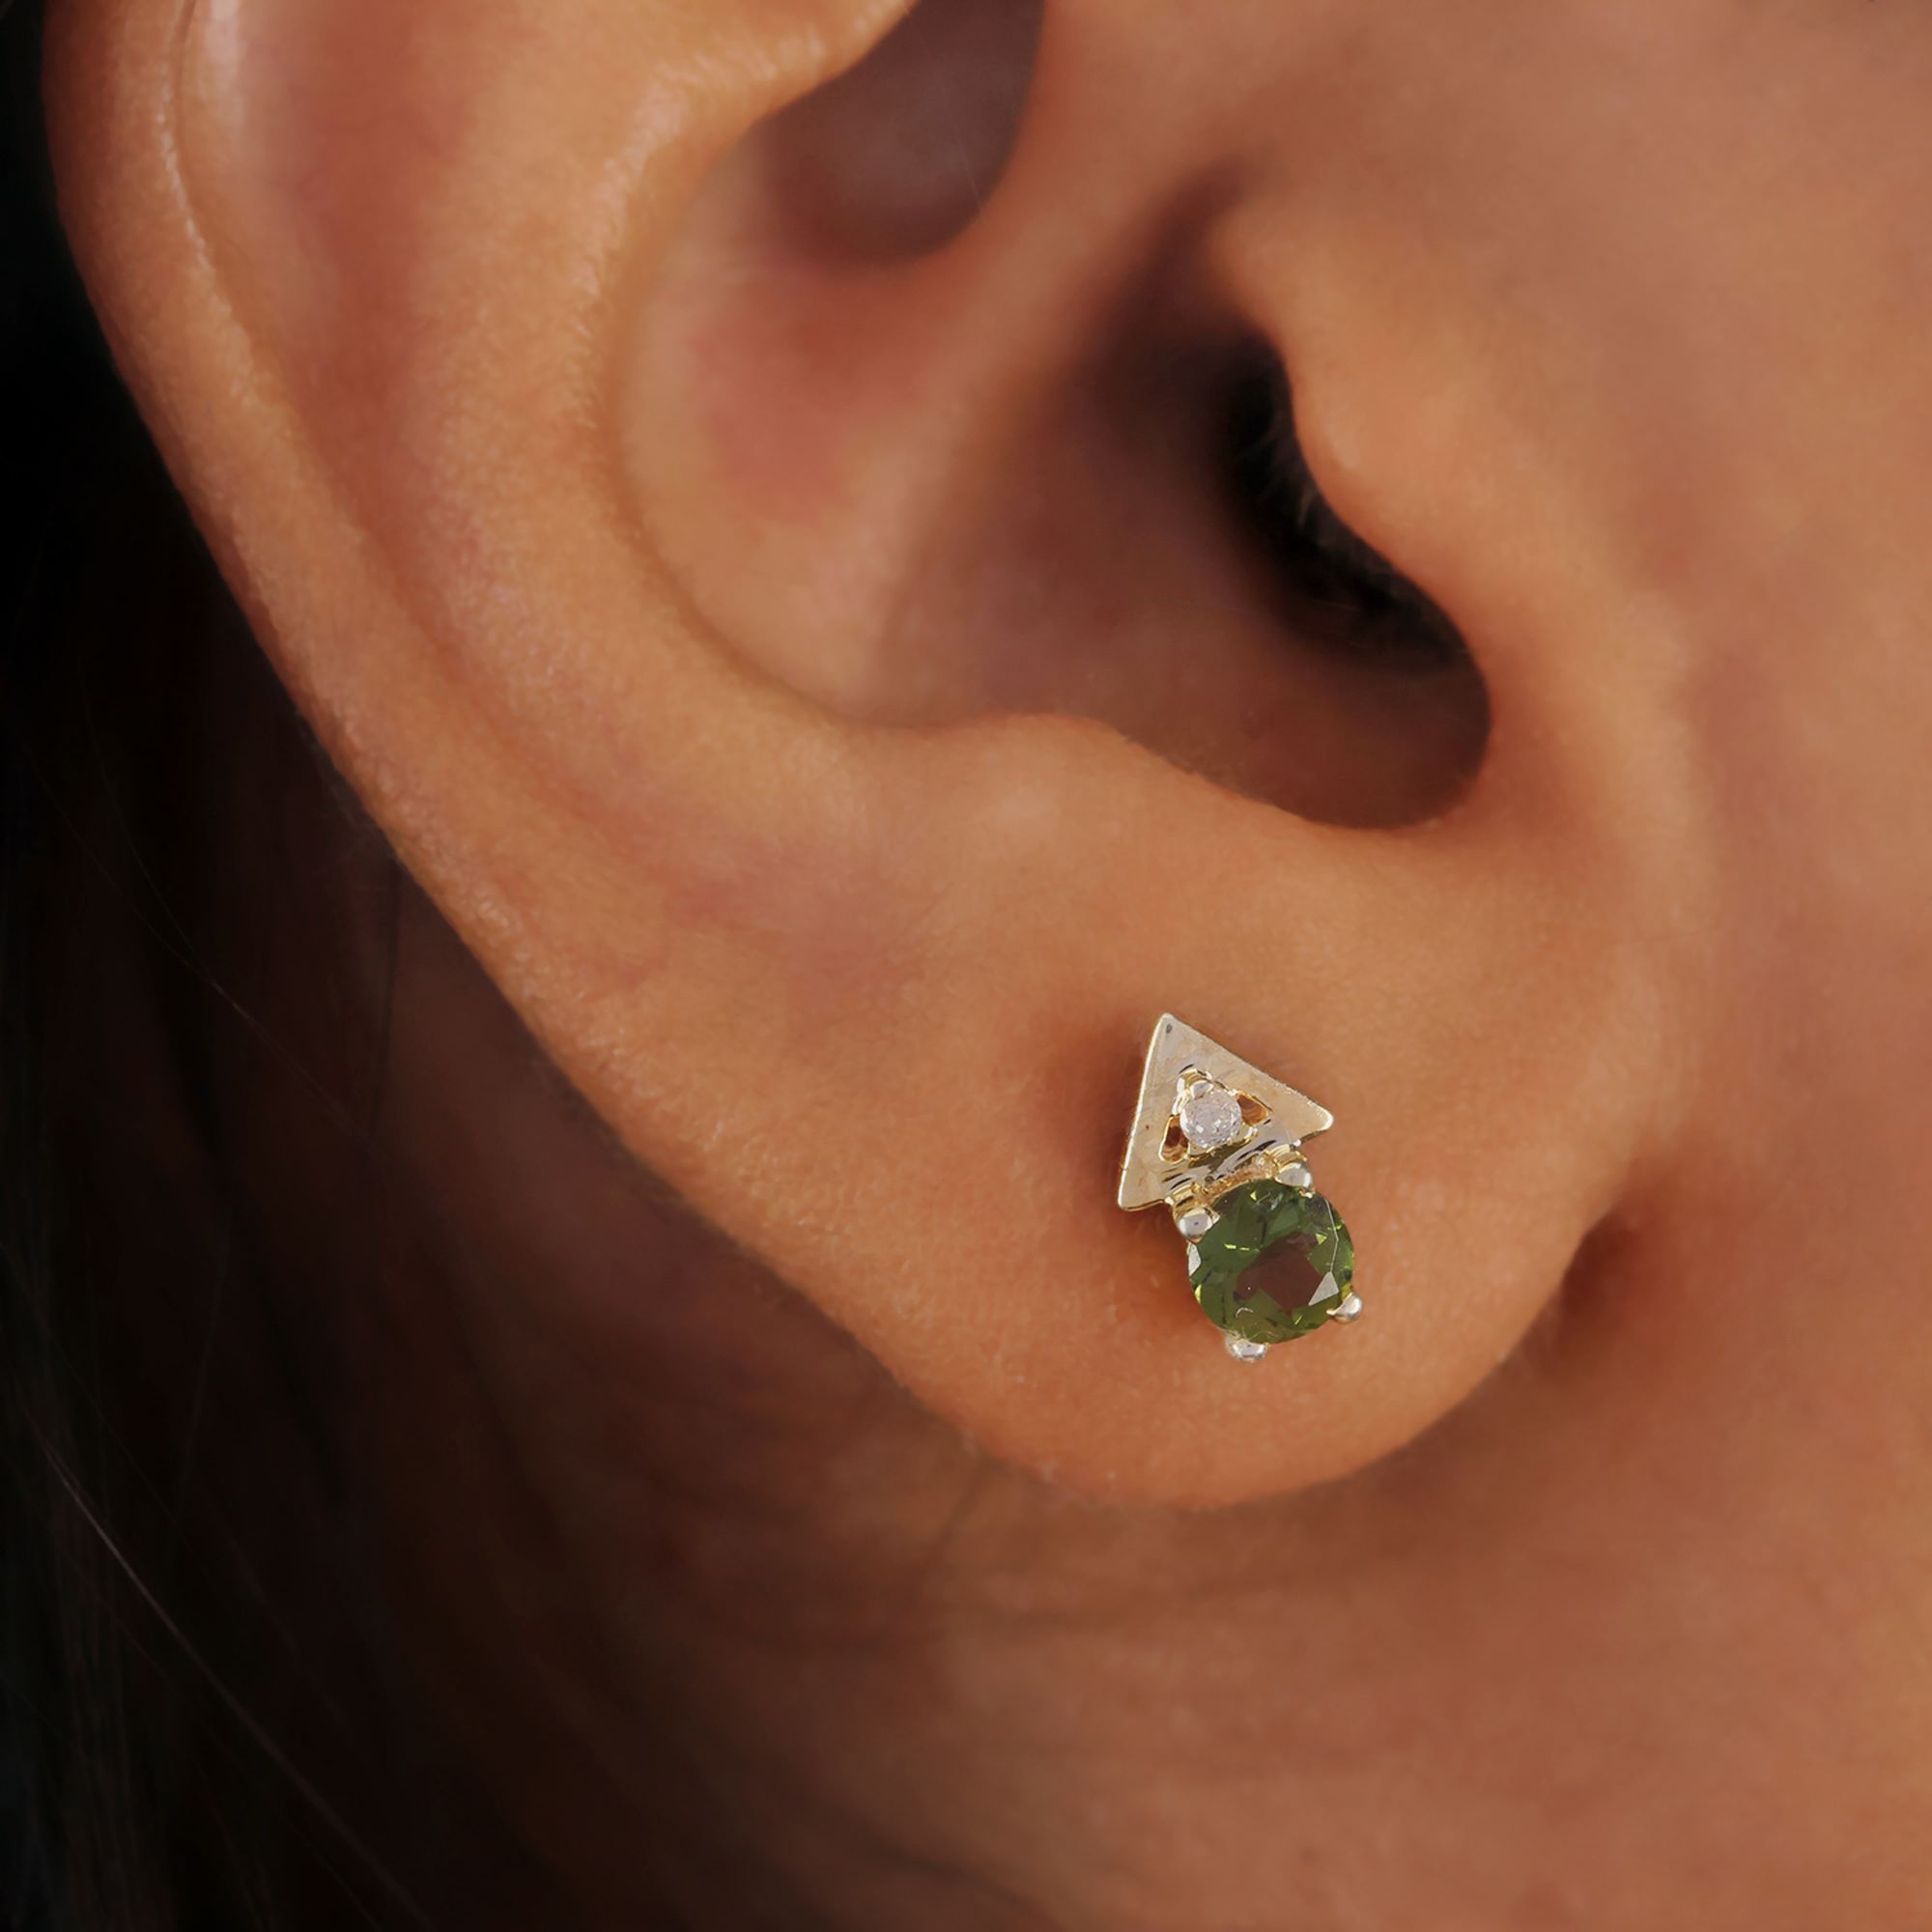 Solid 14k Gold Natural Diamond Gemstone Tourmaline Solitaire Stud Earrings